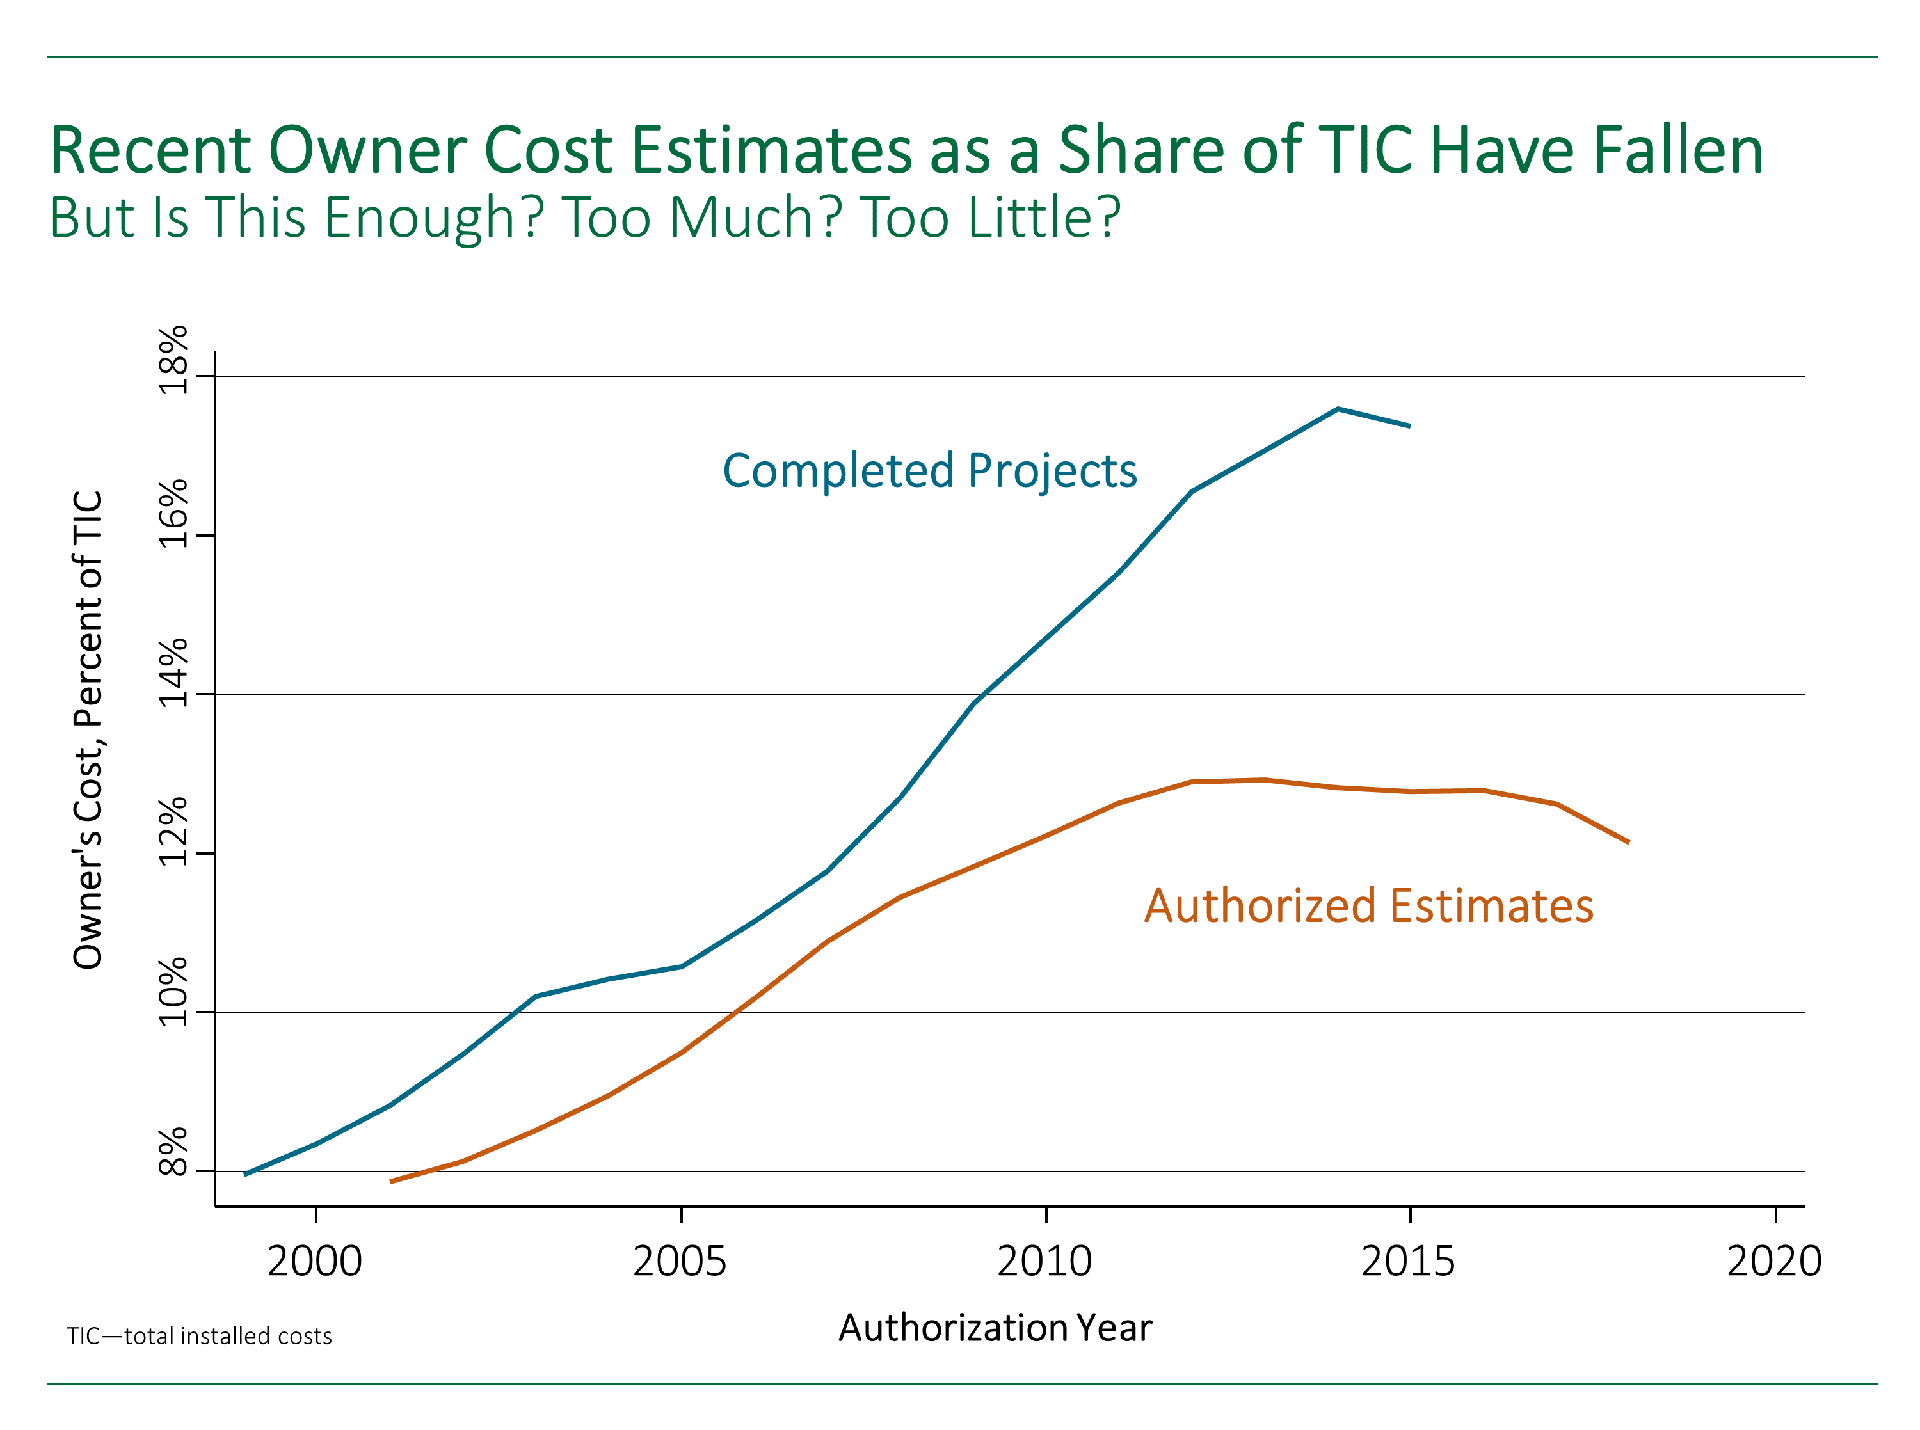 Chart showing how owner cost estimates as a share of total installed costs have fallen in recent years. But is this enough, too much, or too little?